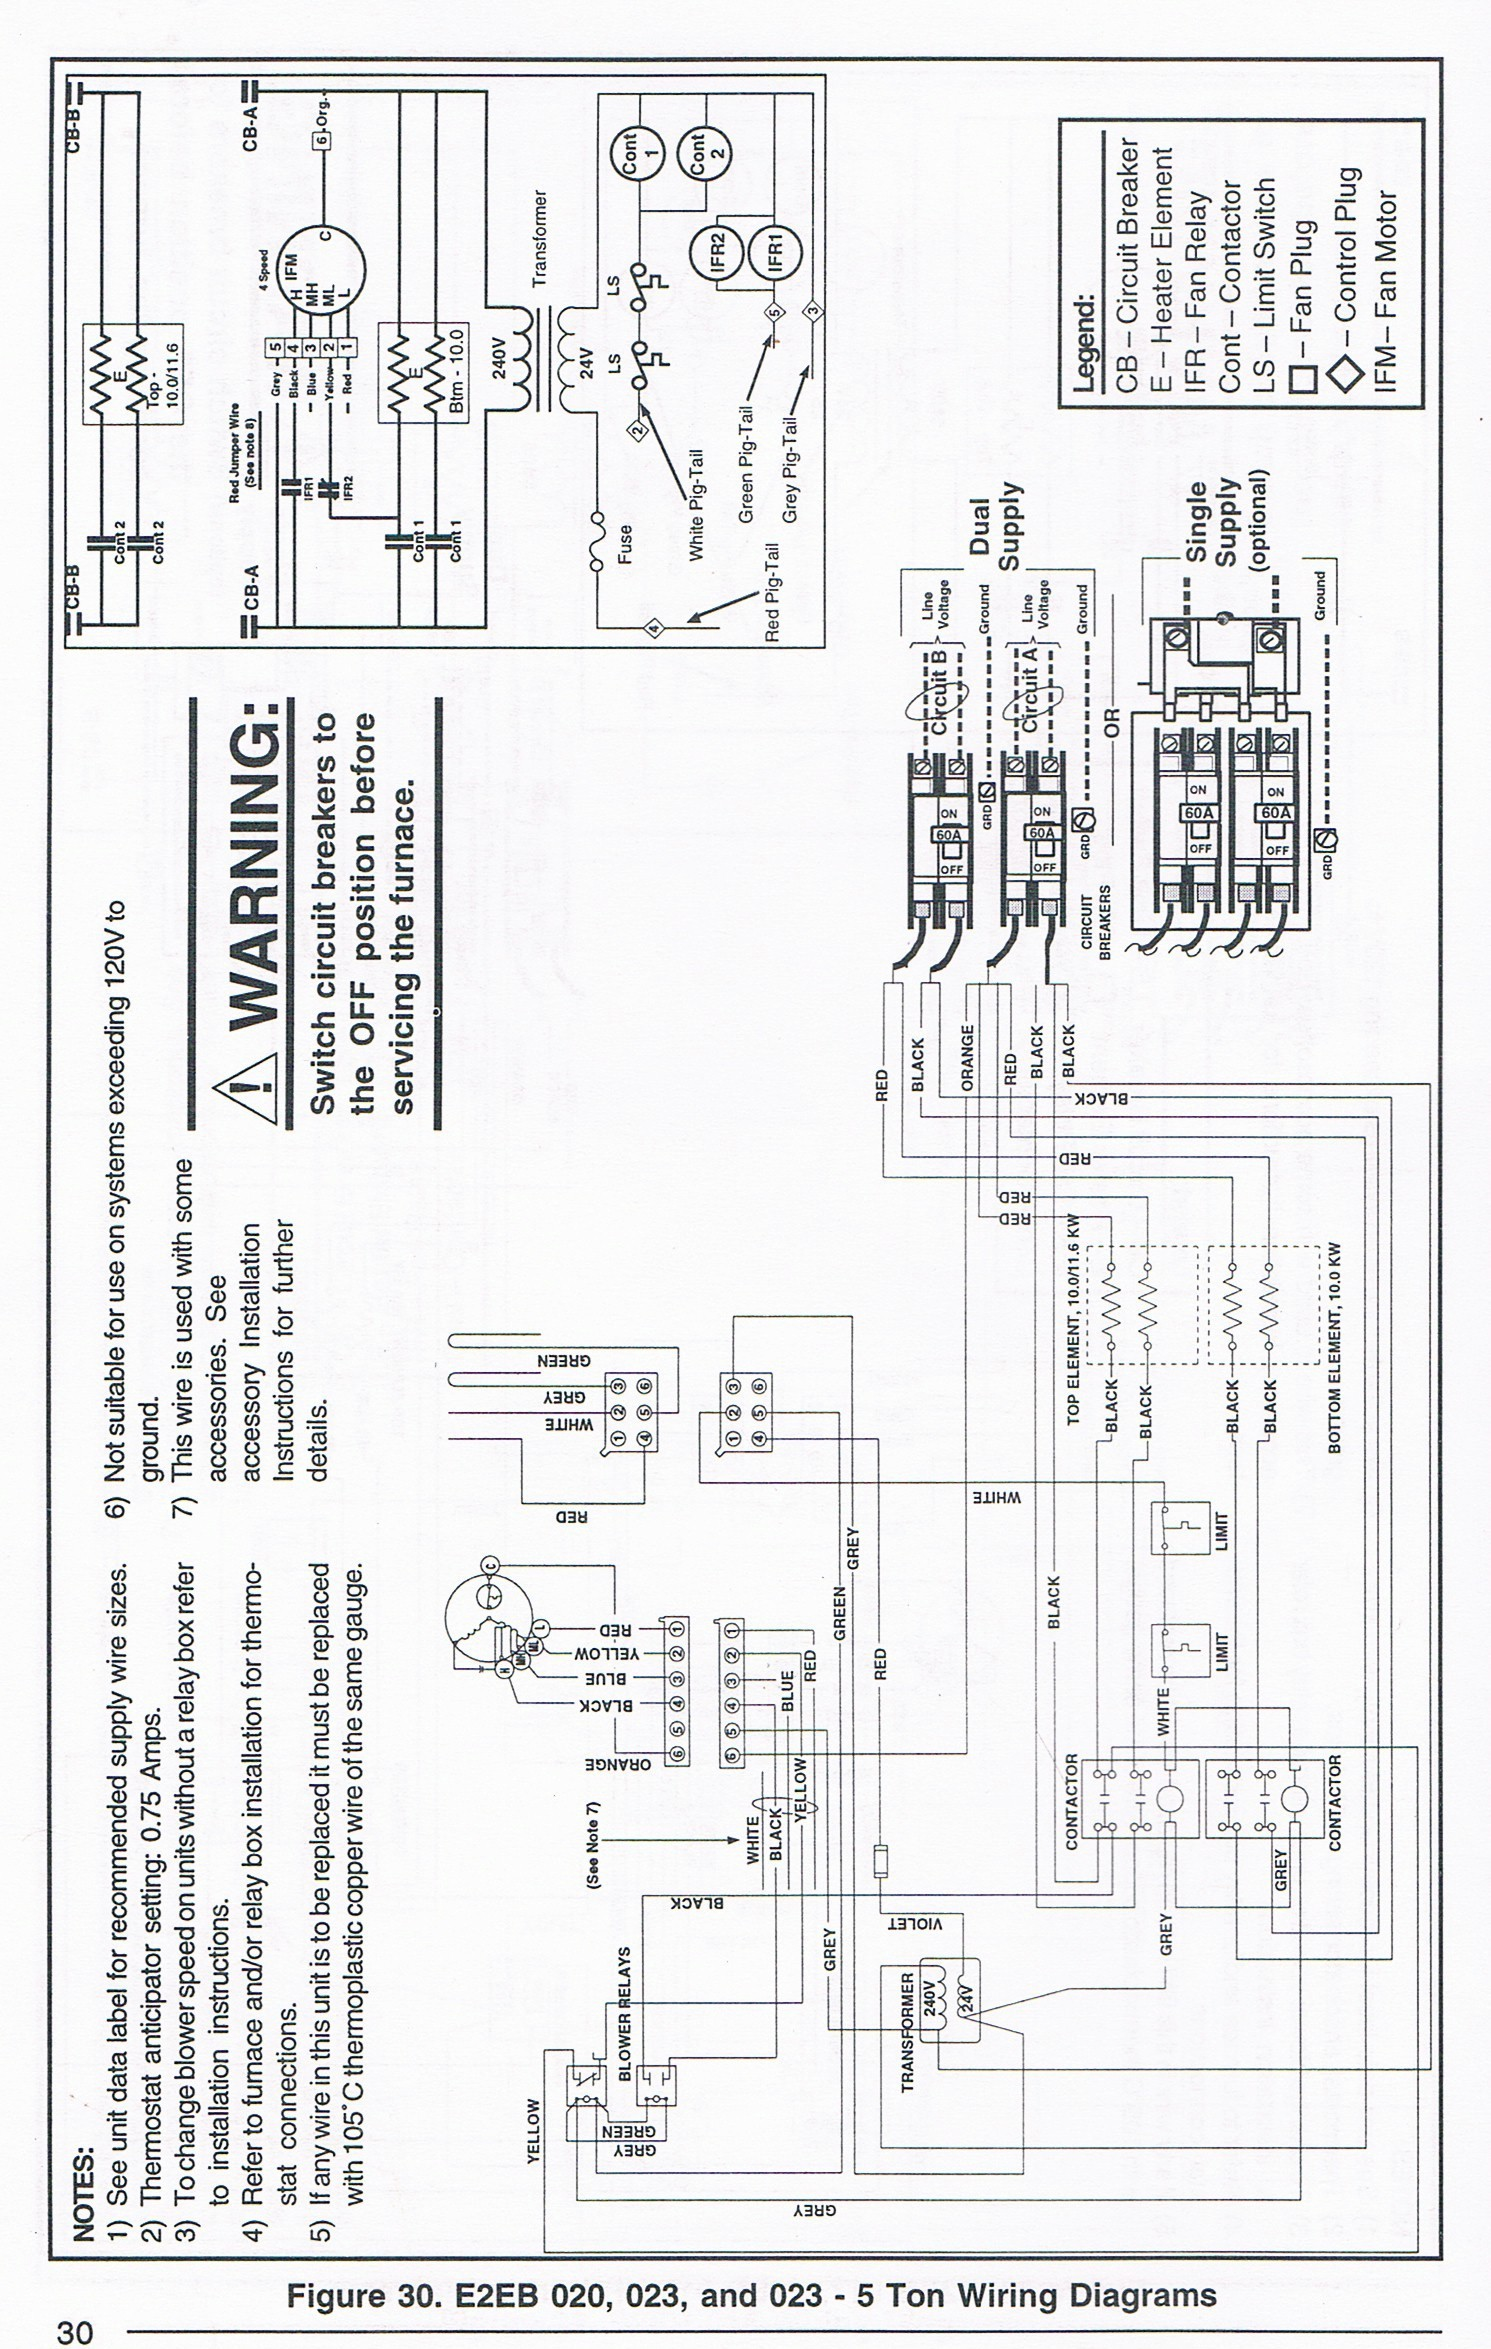 Nordyne Wiring Diagram Electric Furnace New Ac Wiring Diagram for Intertherm Air Conditioner Wiring Diagram